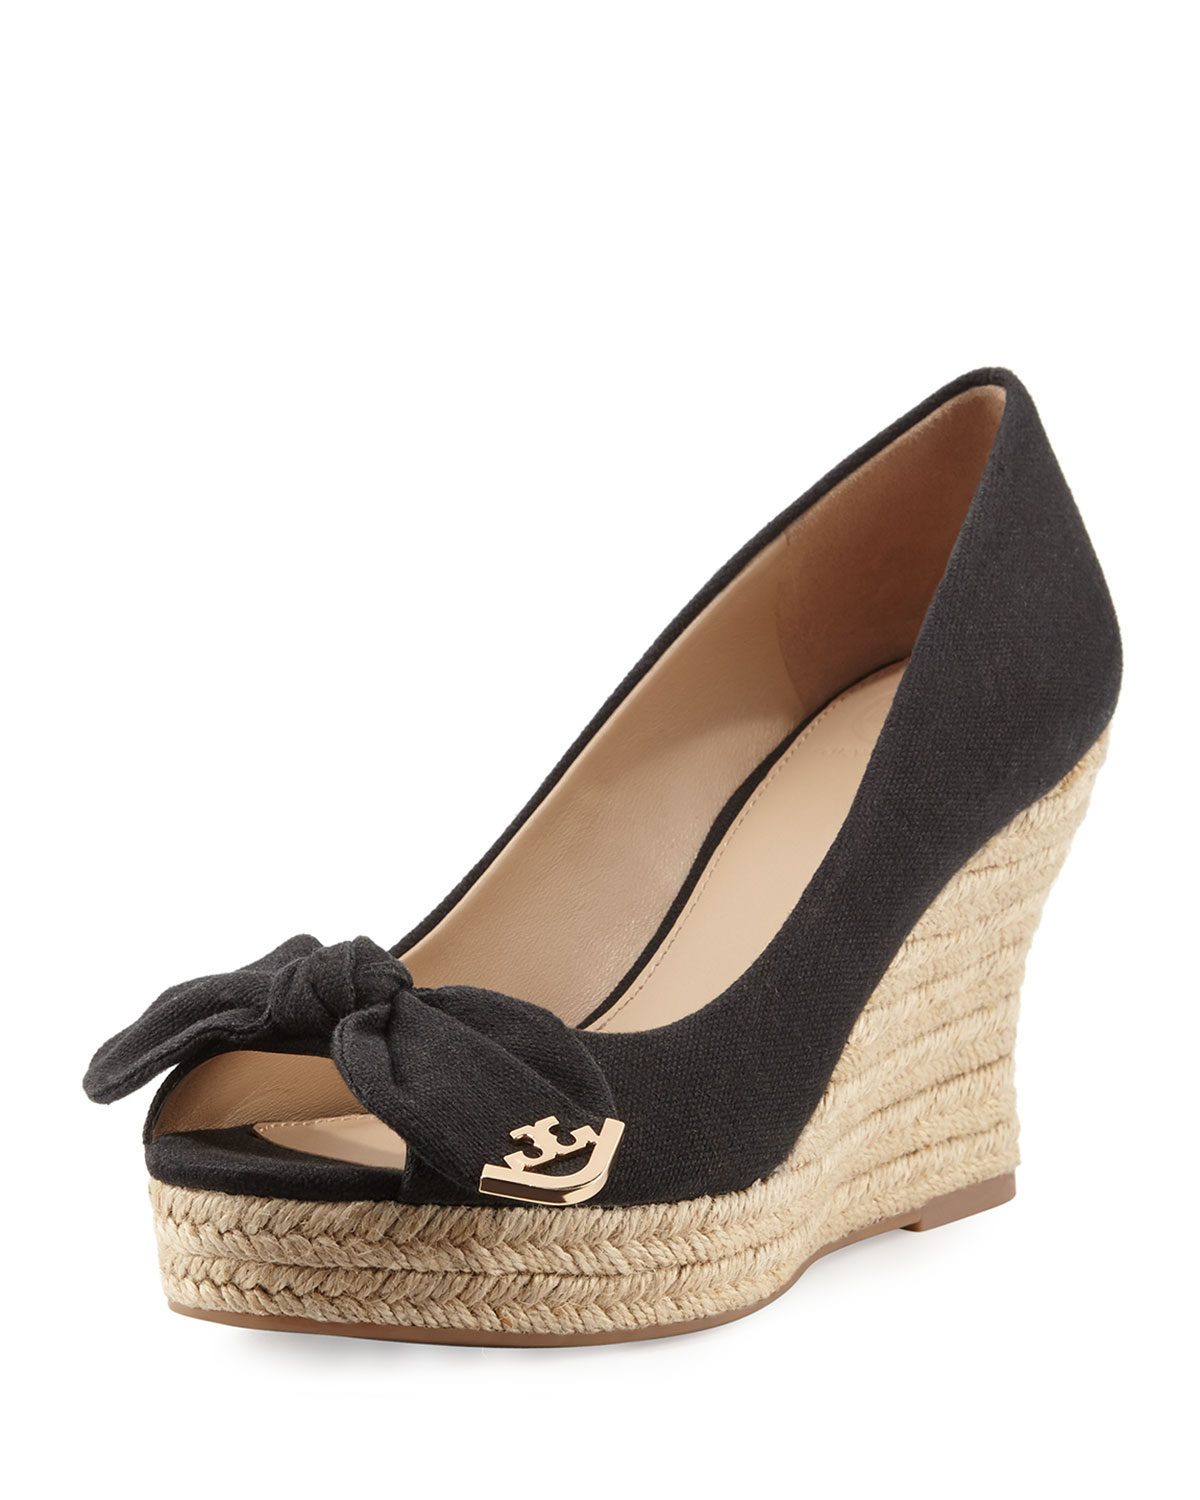 discount great deals Tory Burch Dory Espadrille Wedges discount manchester great sale wM7SPaQf18